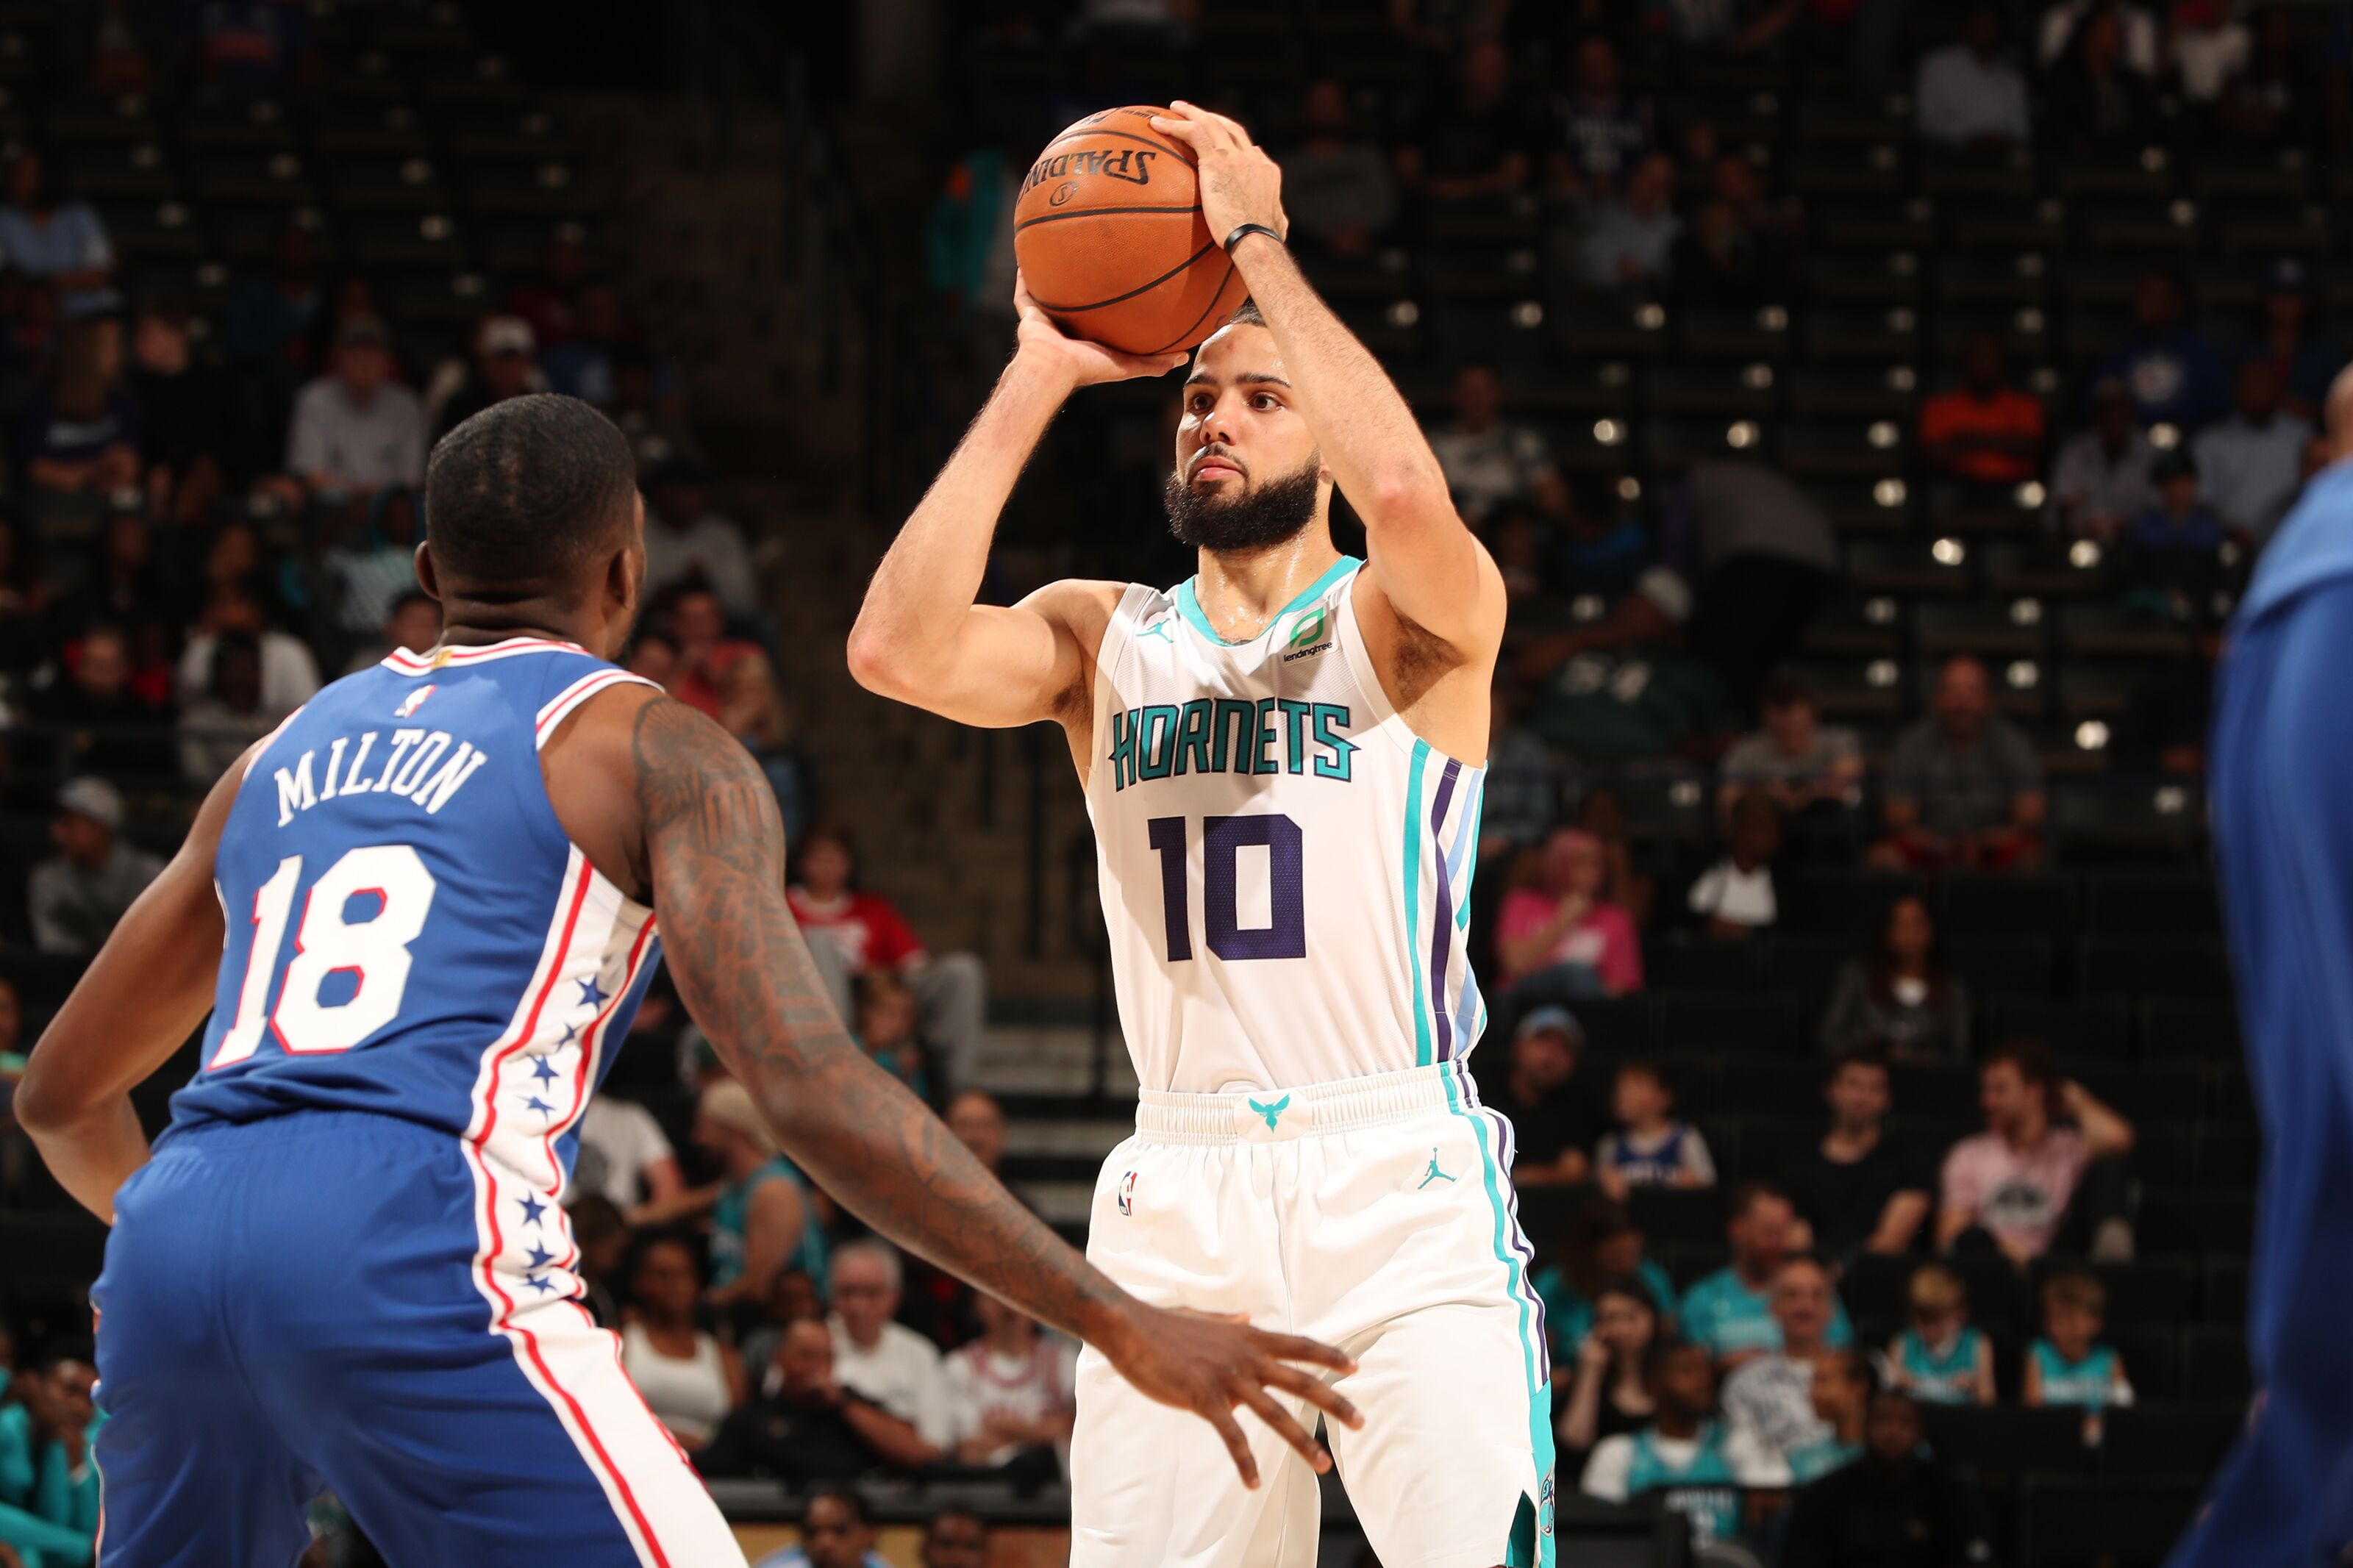 After strong preseason, Caleb Martin officially makes Charlotte Hornets roster